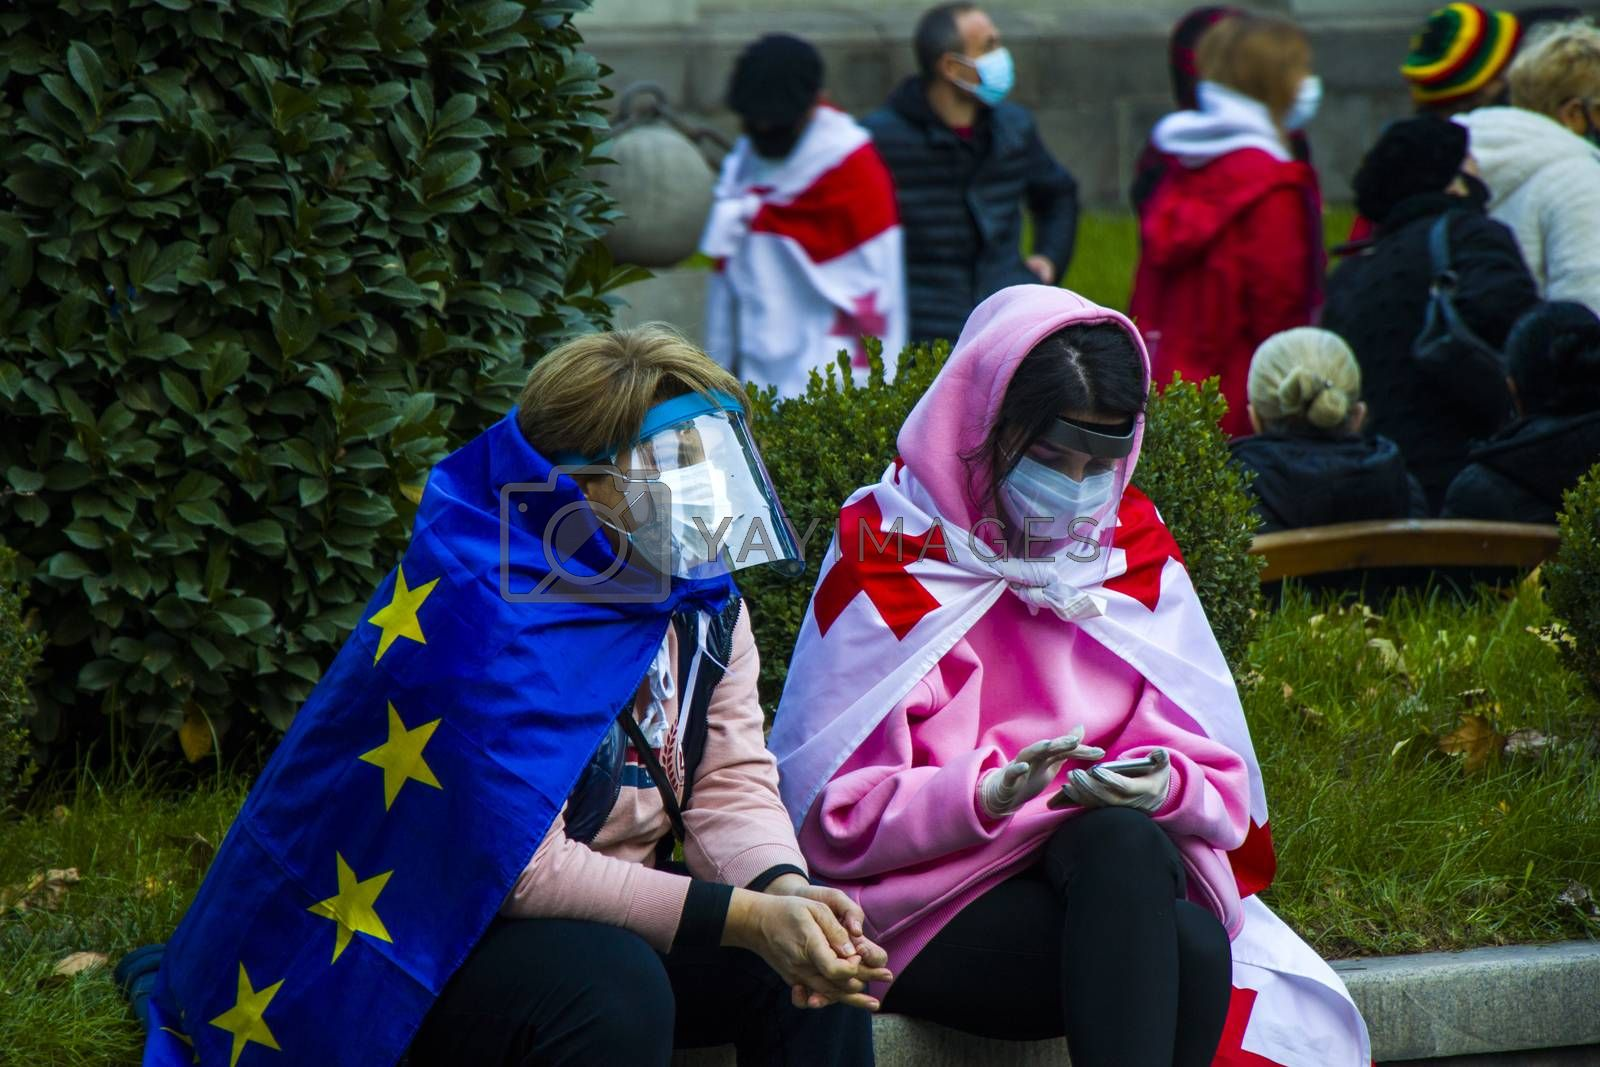 TBILISI, GEORGIA - November 08, 2020: Georgian protests in front of the Parliament of Georgia, anti-government protests after elections. People with medical face masks.